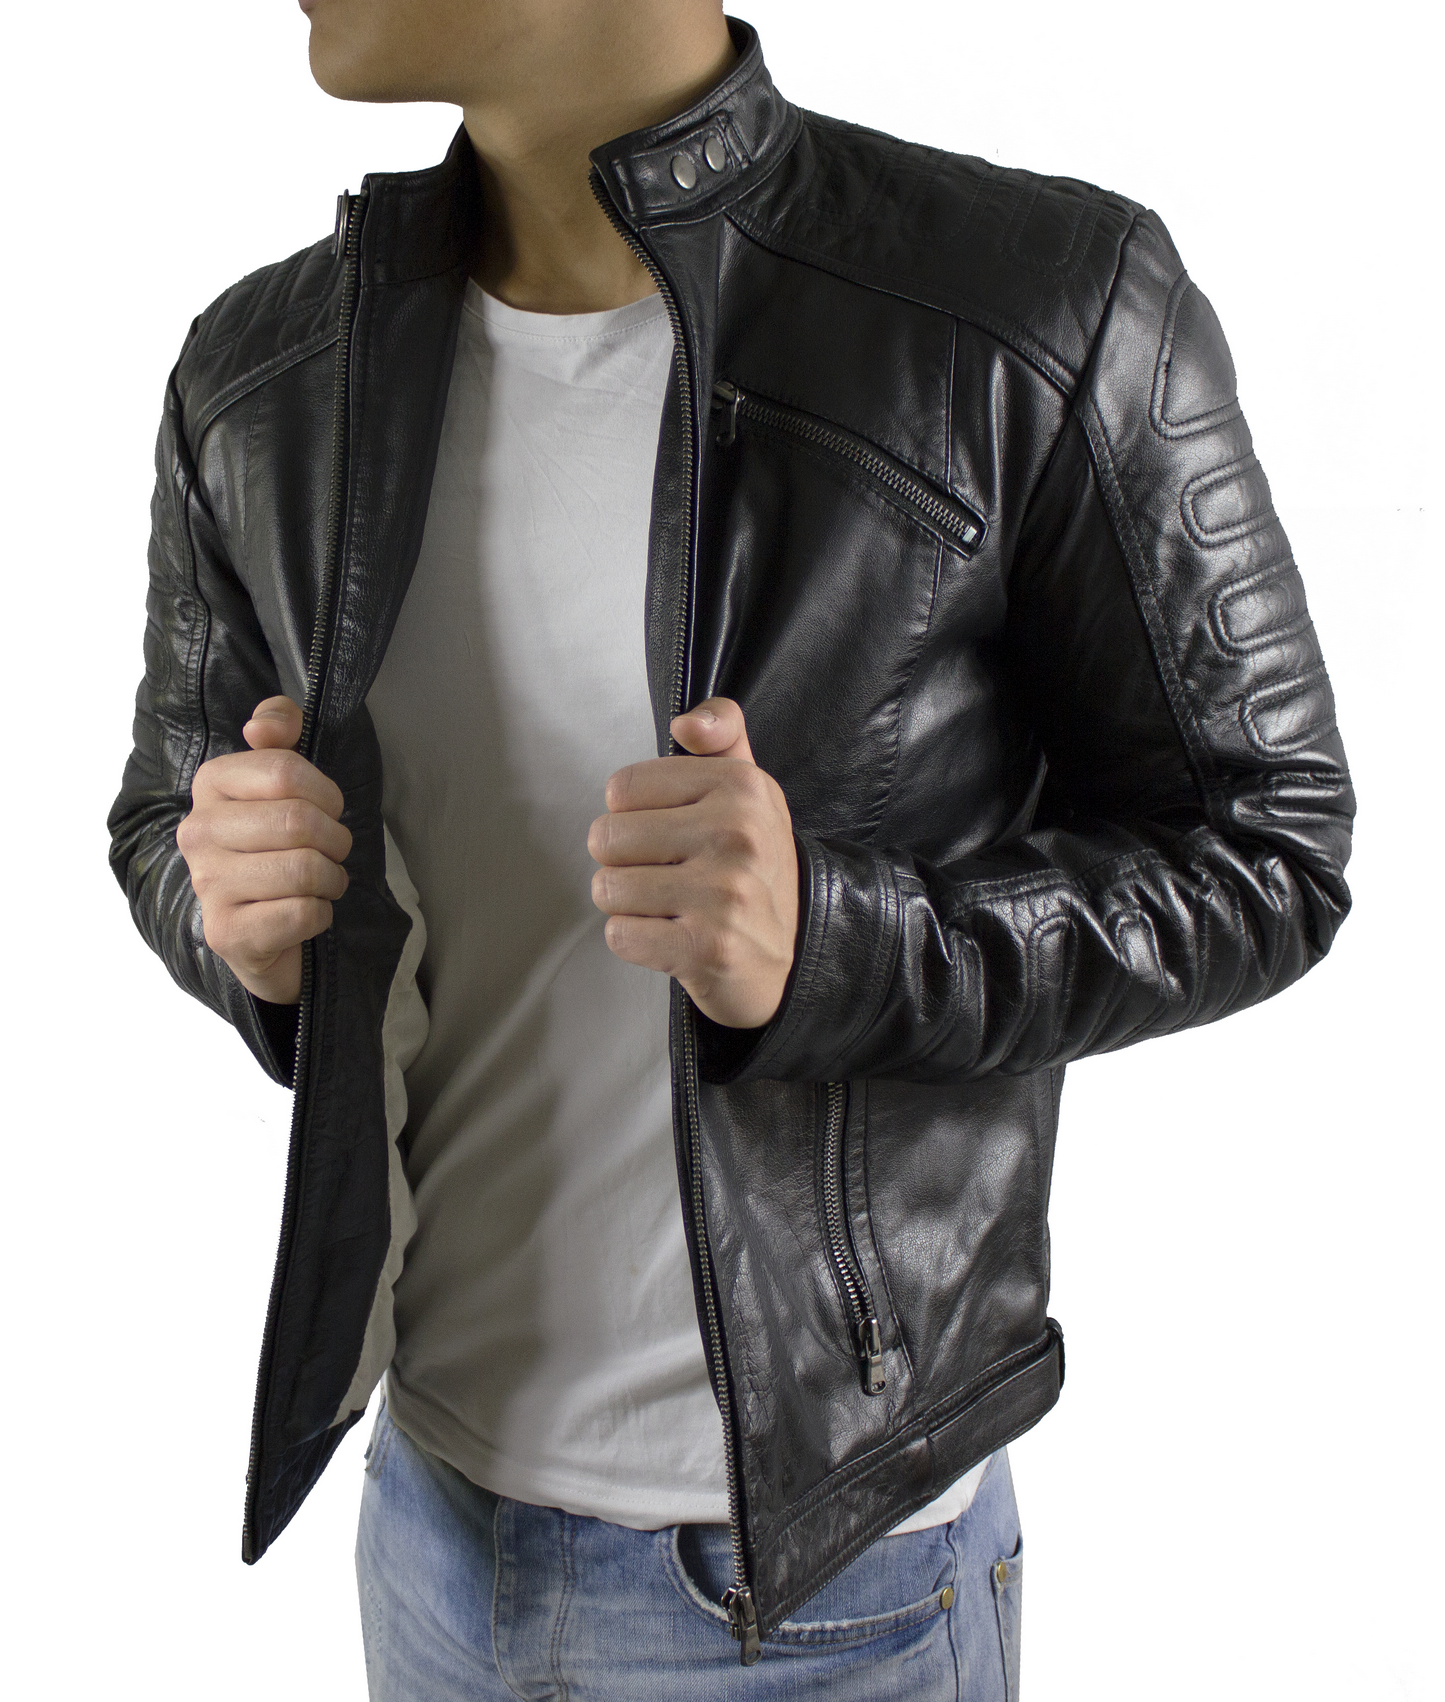 viktor herren echt leder biker lederjacke in diversen. Black Bedroom Furniture Sets. Home Design Ideas